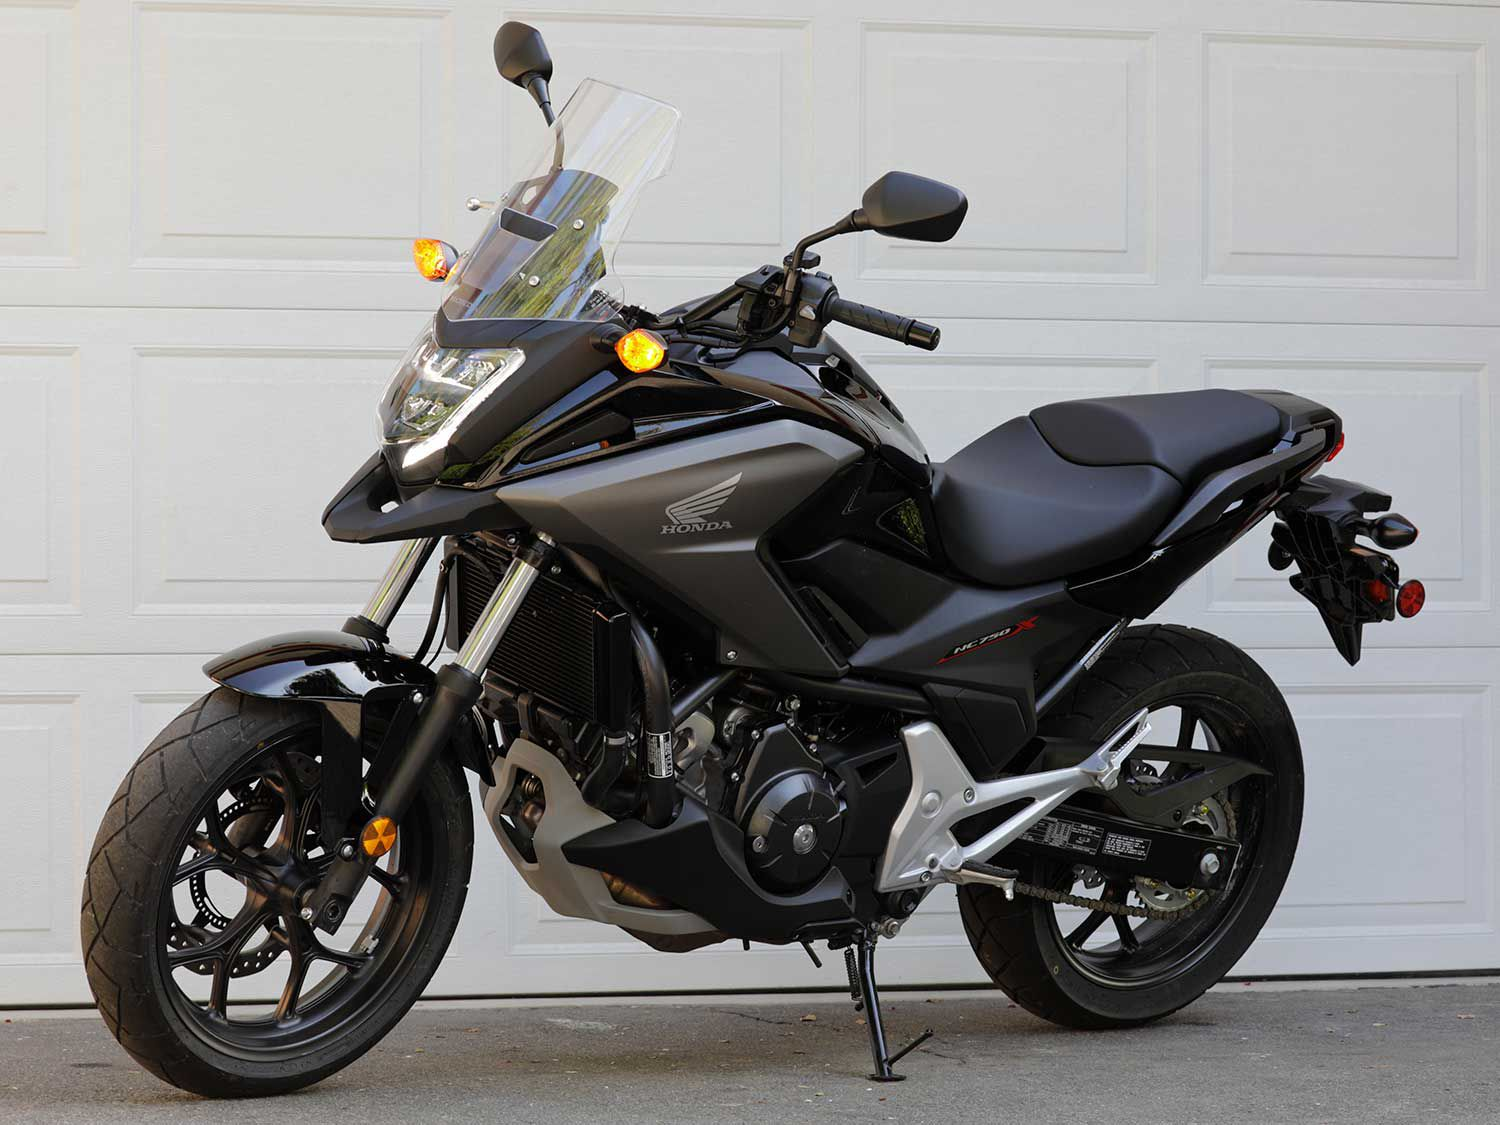 If comfort, efficiency, and function are what you're seeking in a motorcycle, Honda makes a great case for its 2020 NC750X.